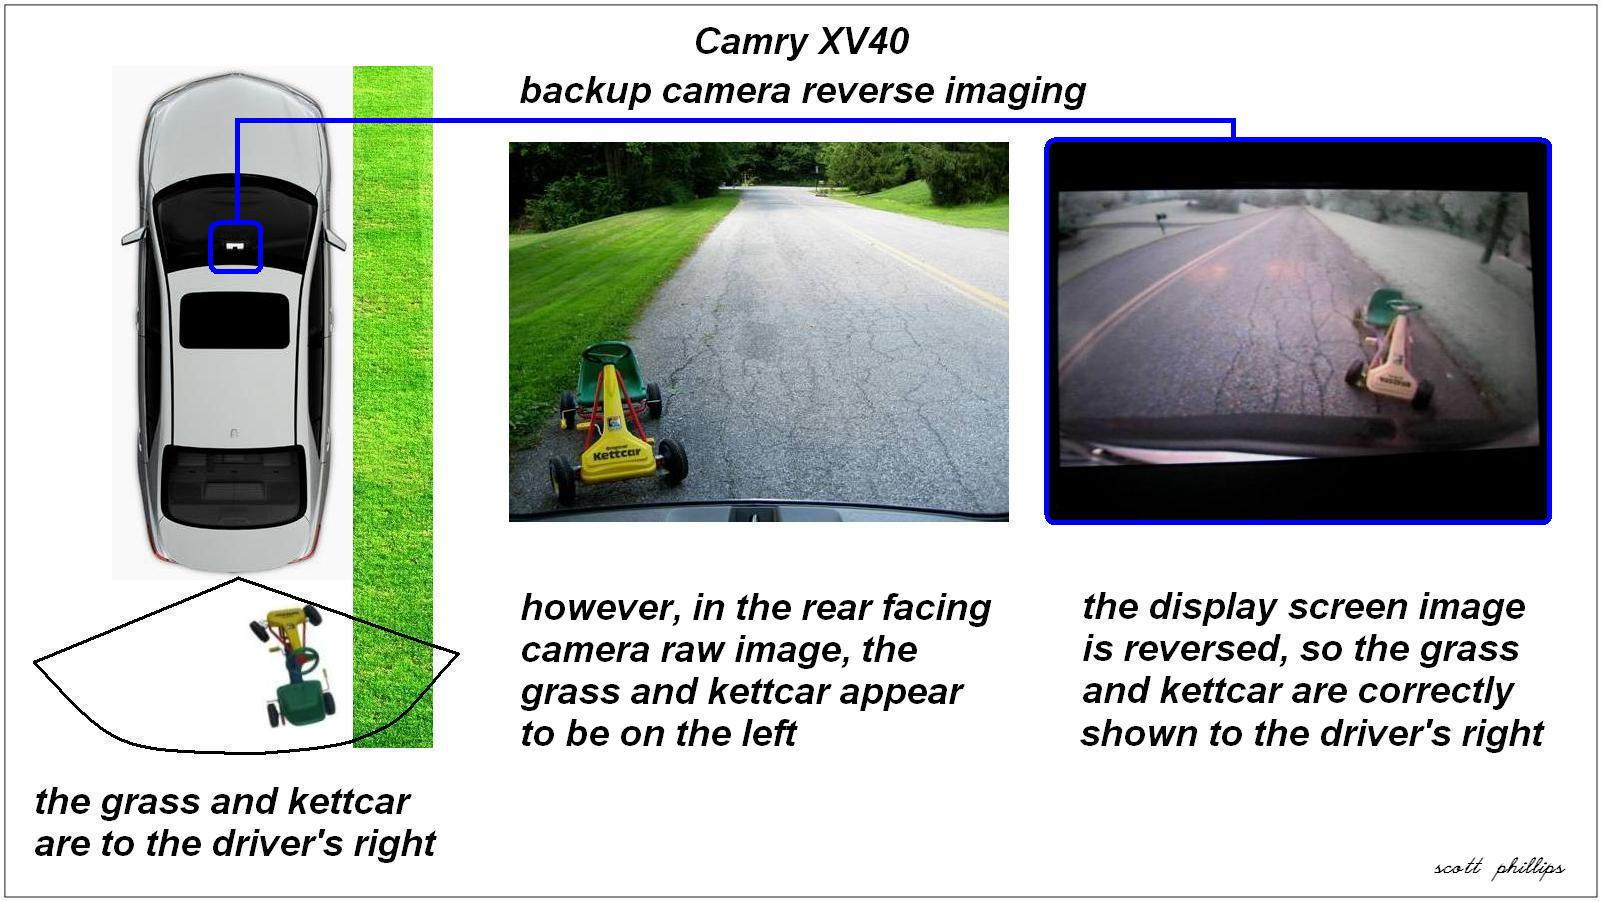 1 BackupCameraReverseImaging 86172 toyota camry 2007 2011 how to install rear view backup camera  at readyjetset.co